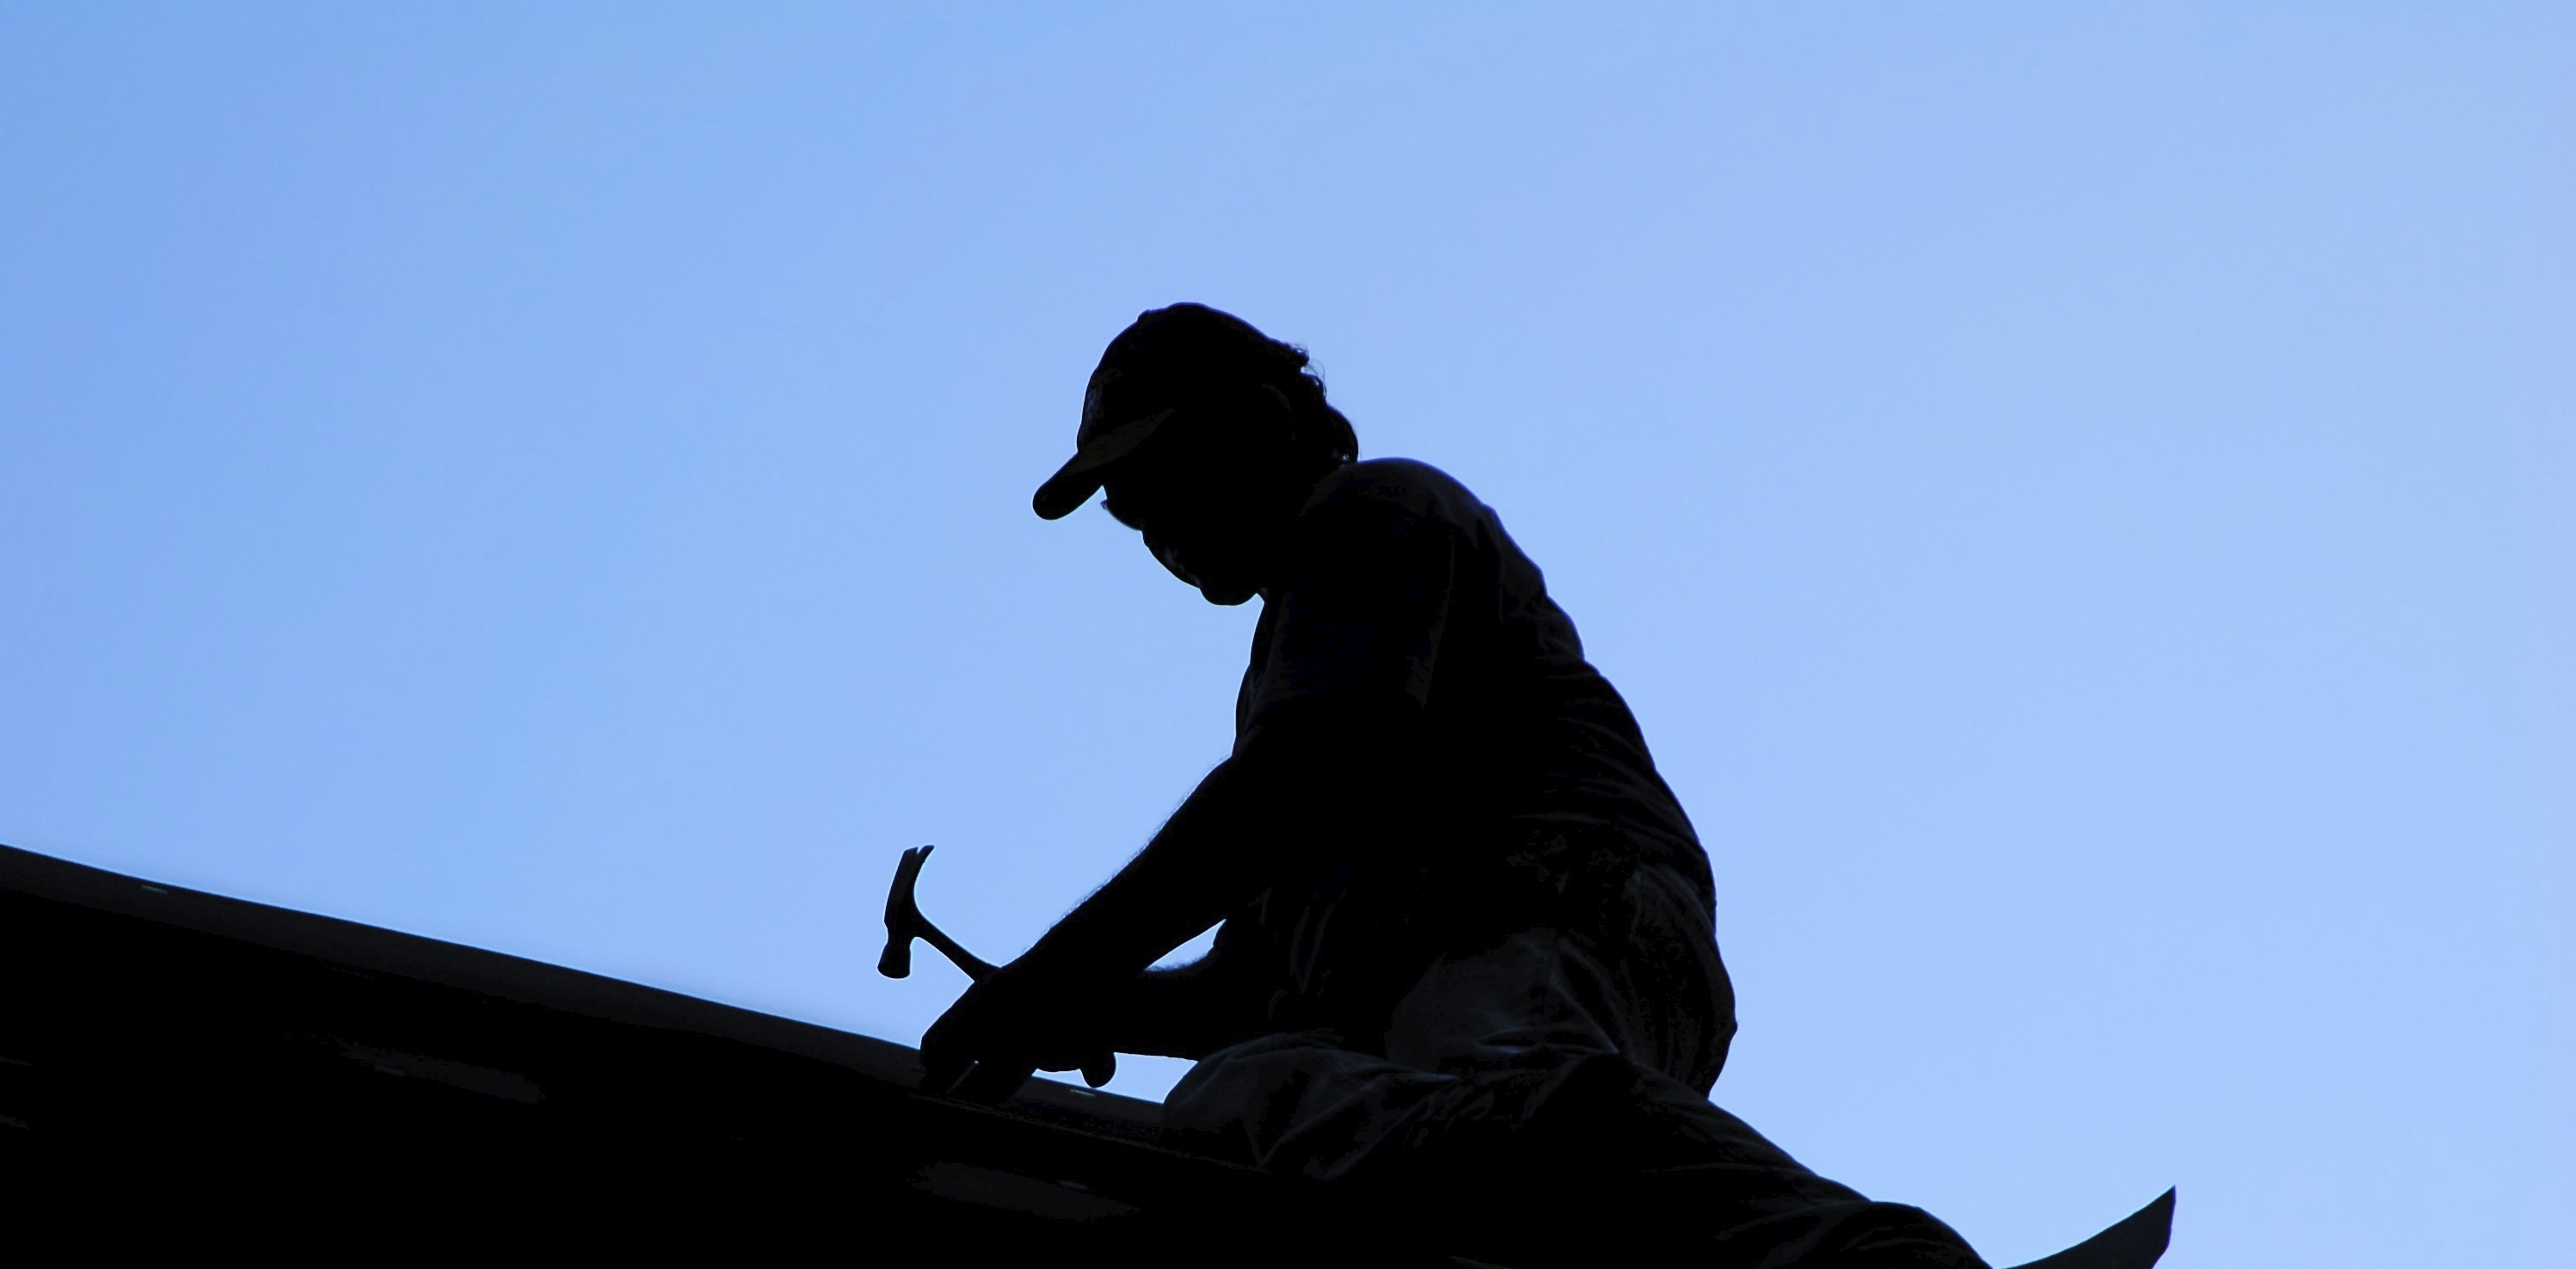 about reo renovators roofing whether you are looking for drywall repair roof replacement or a new paint job our hard working skilled professionals will get the job done right first